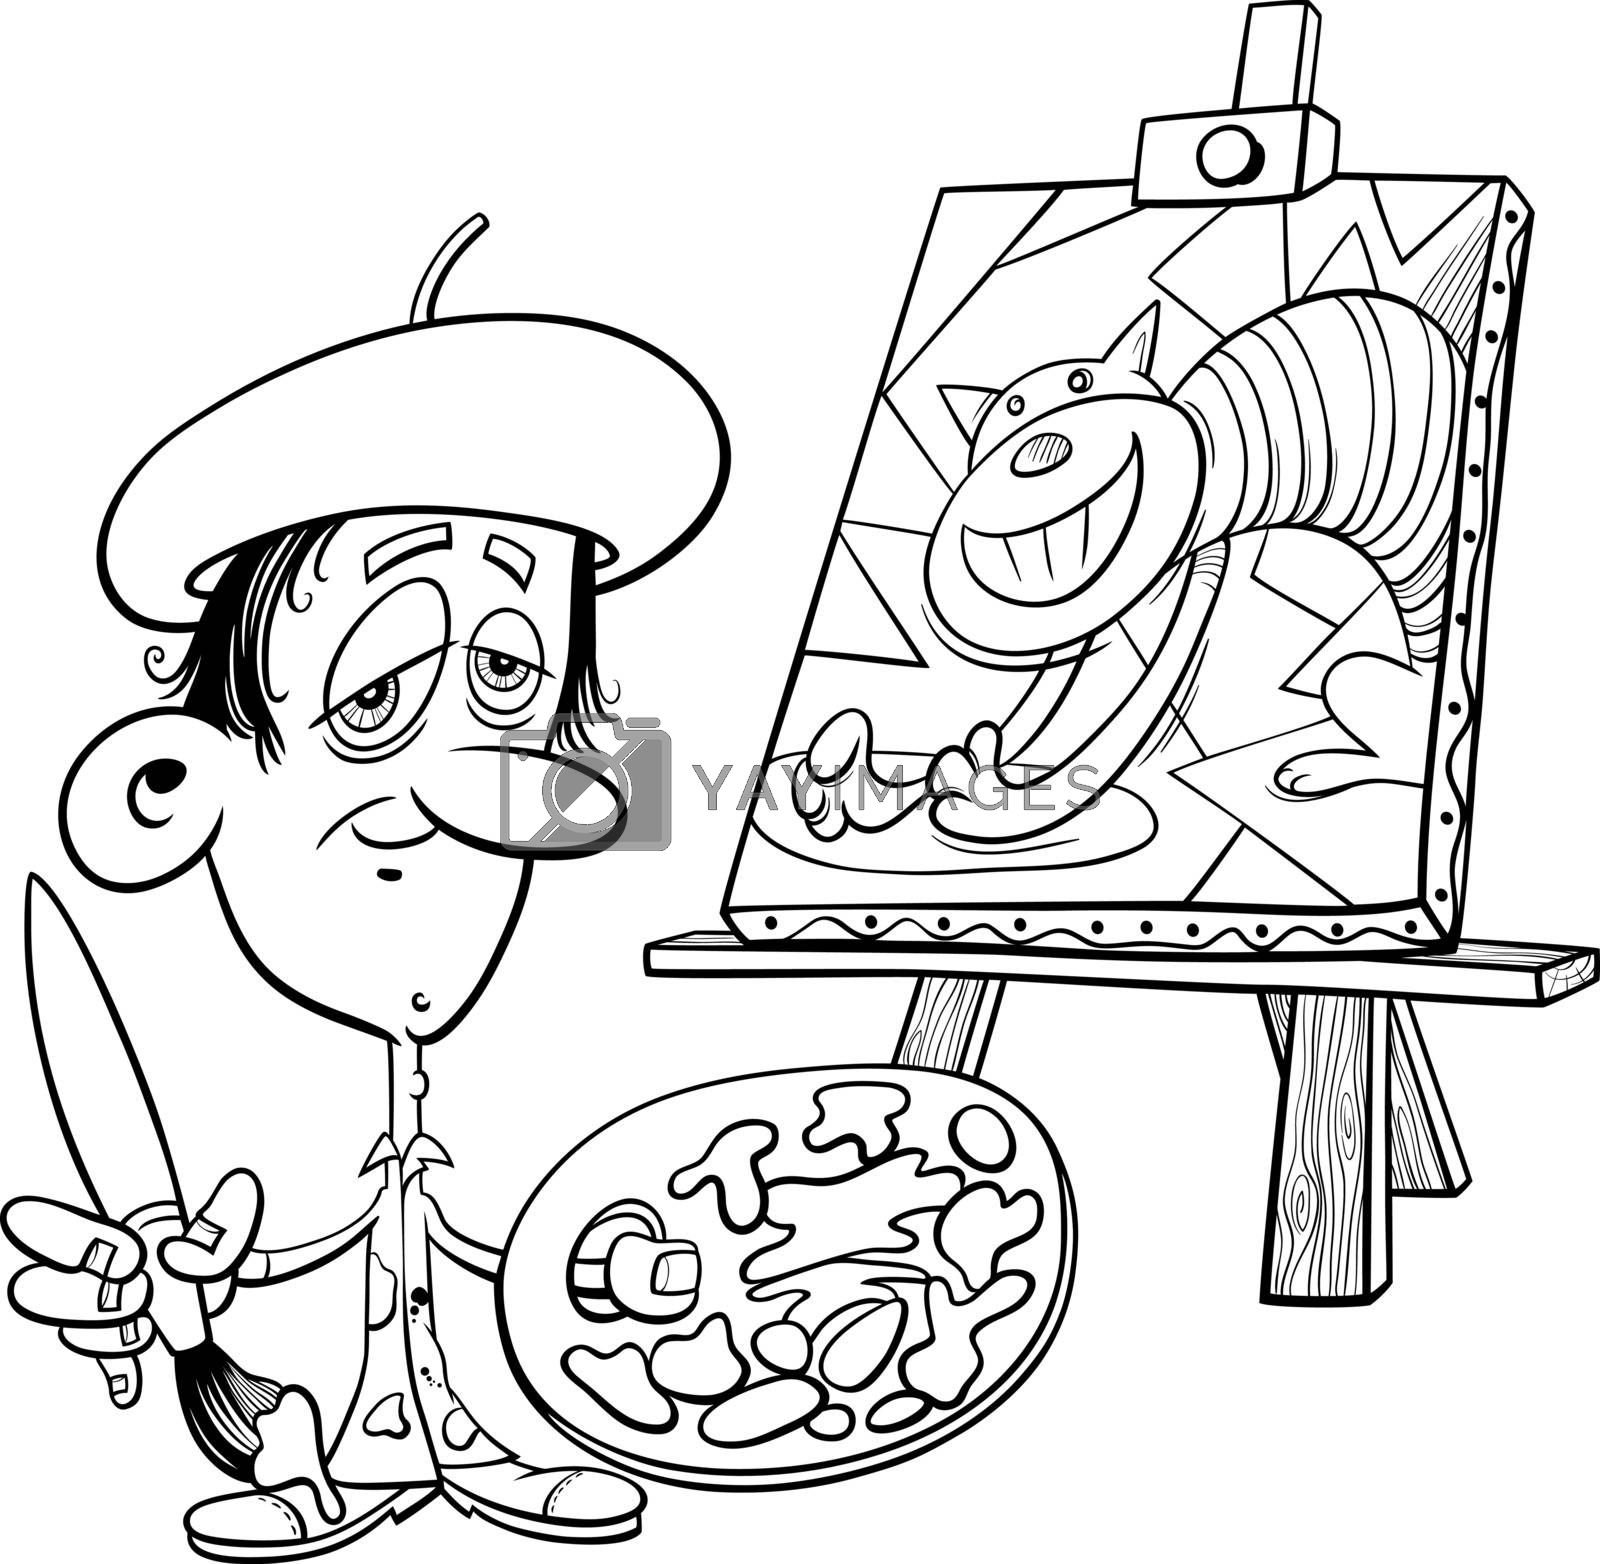 Black and white cartoon illustration of painter artist with his painting coloring book page